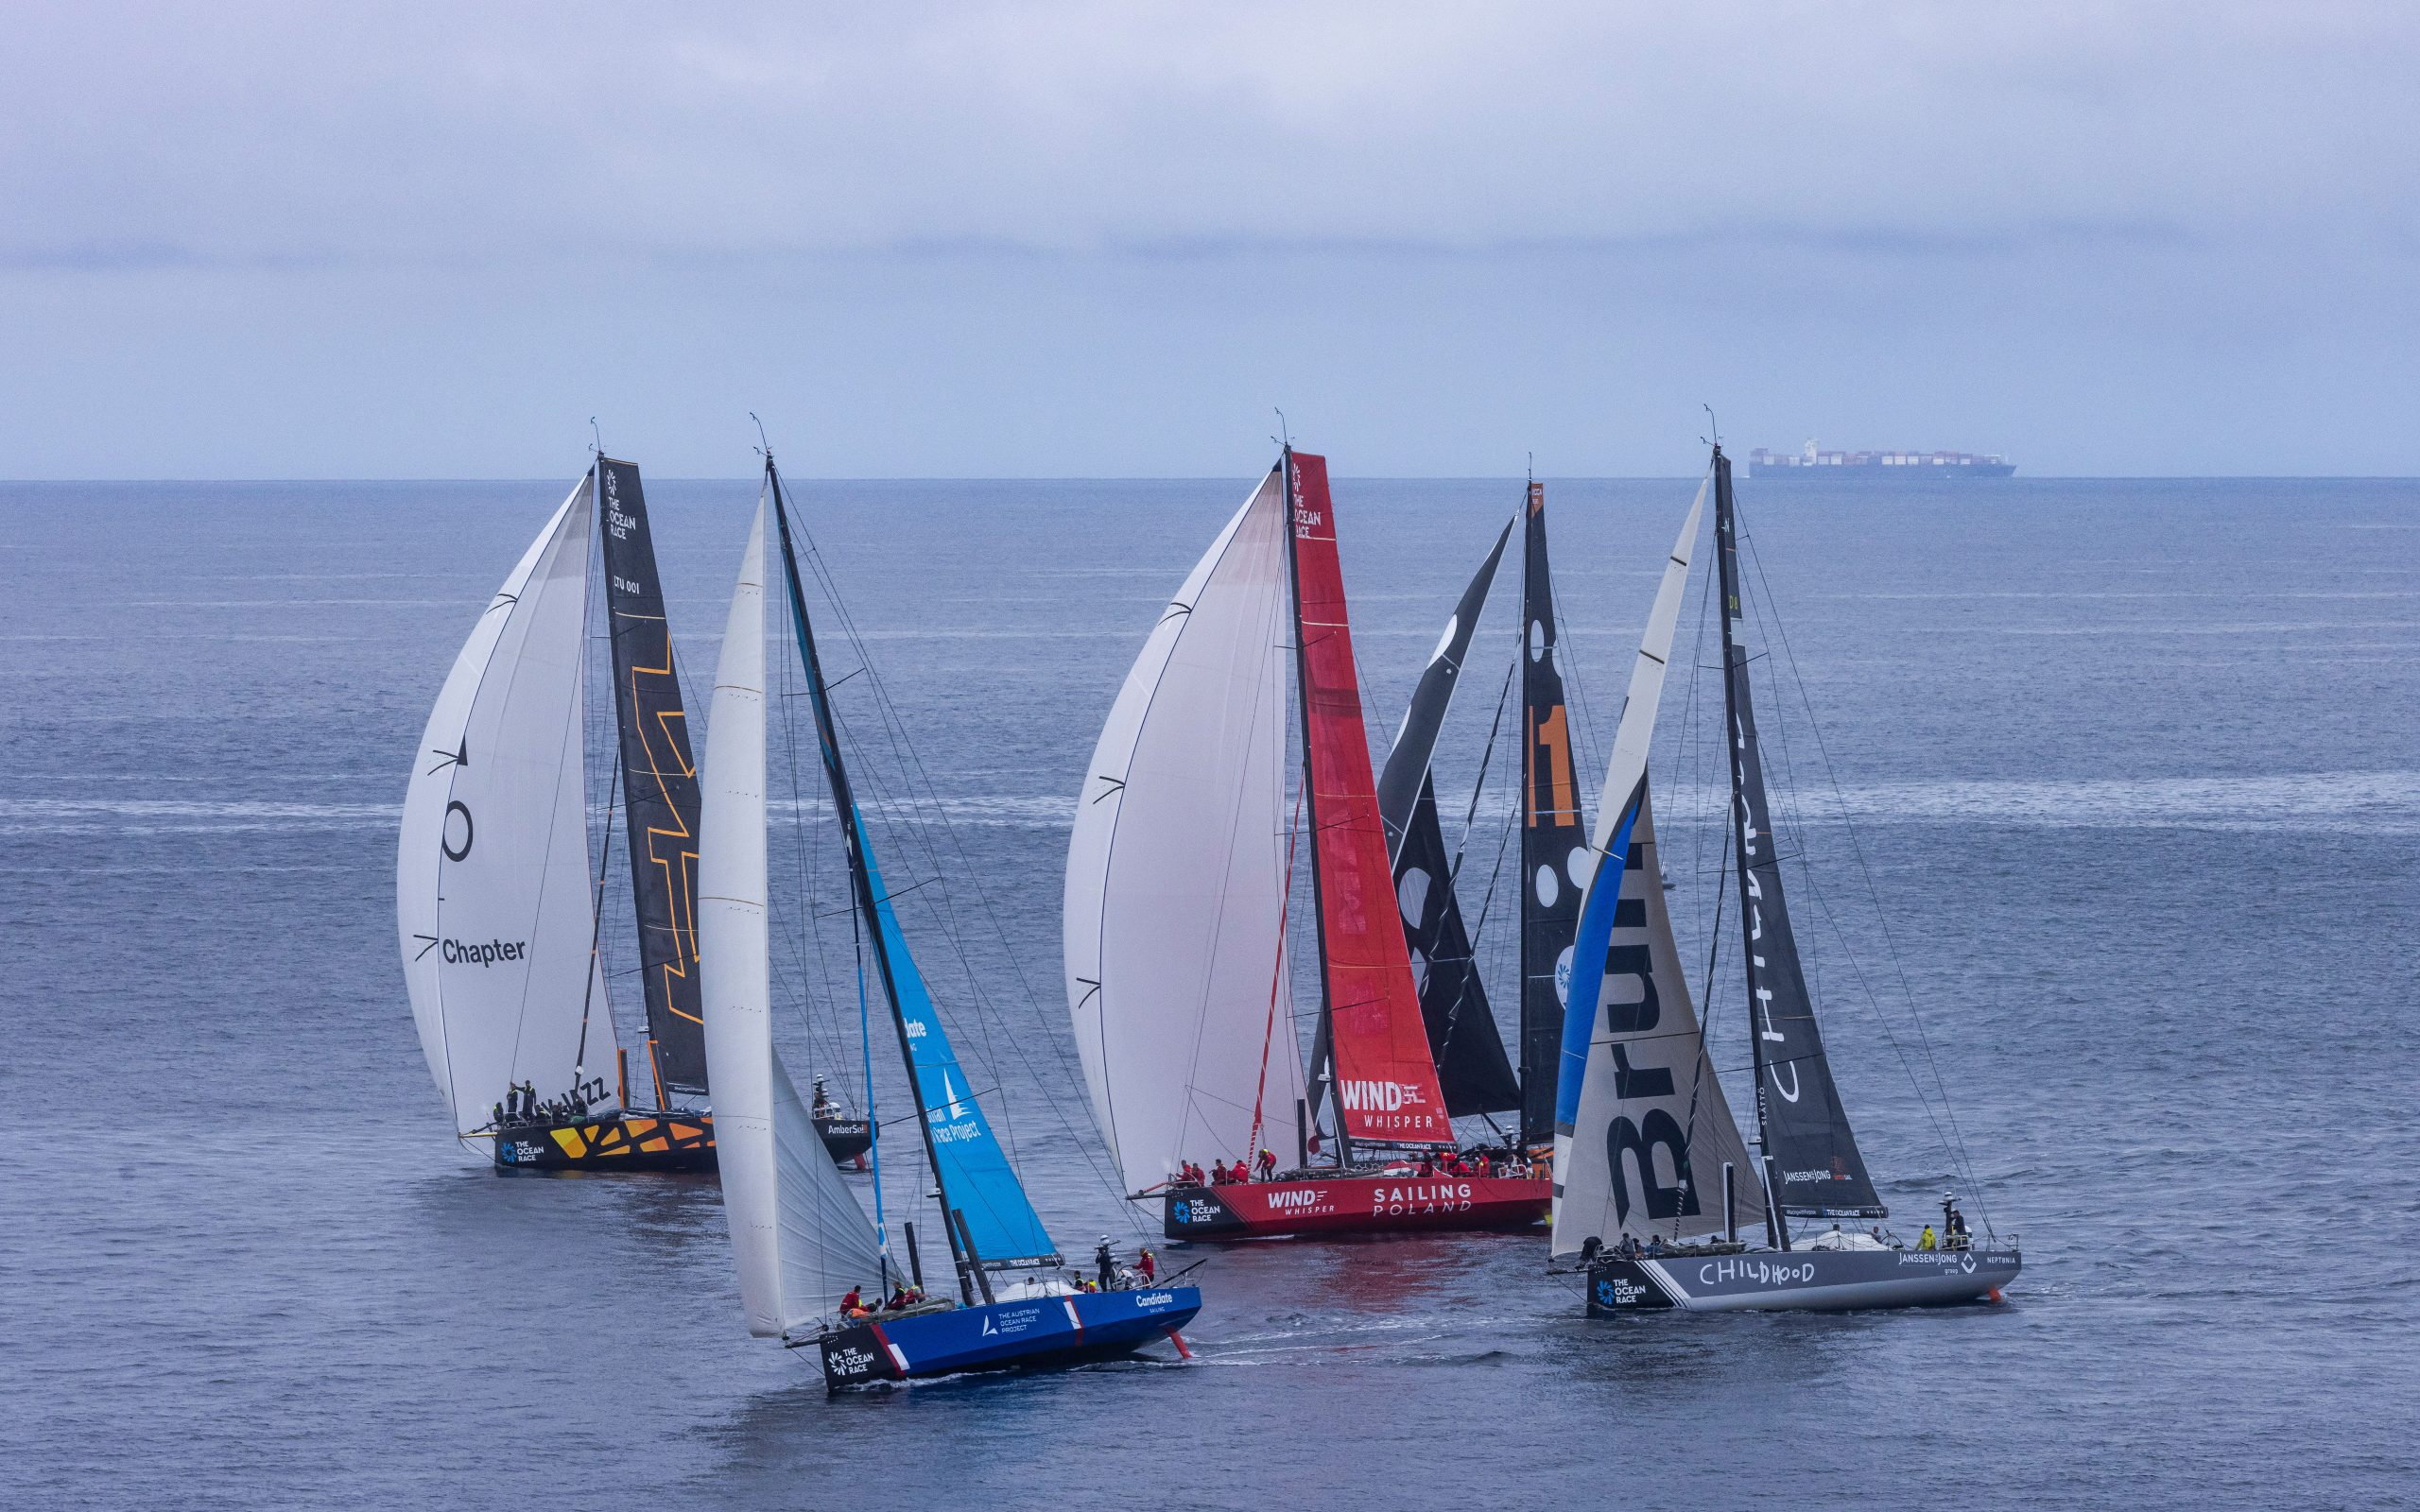 Ocean Race Europe: Leg two finish sets up close final leg m136562 14 00 210602 JRE 5241 5138 scaled 1 BB Yacht Charter Marbella